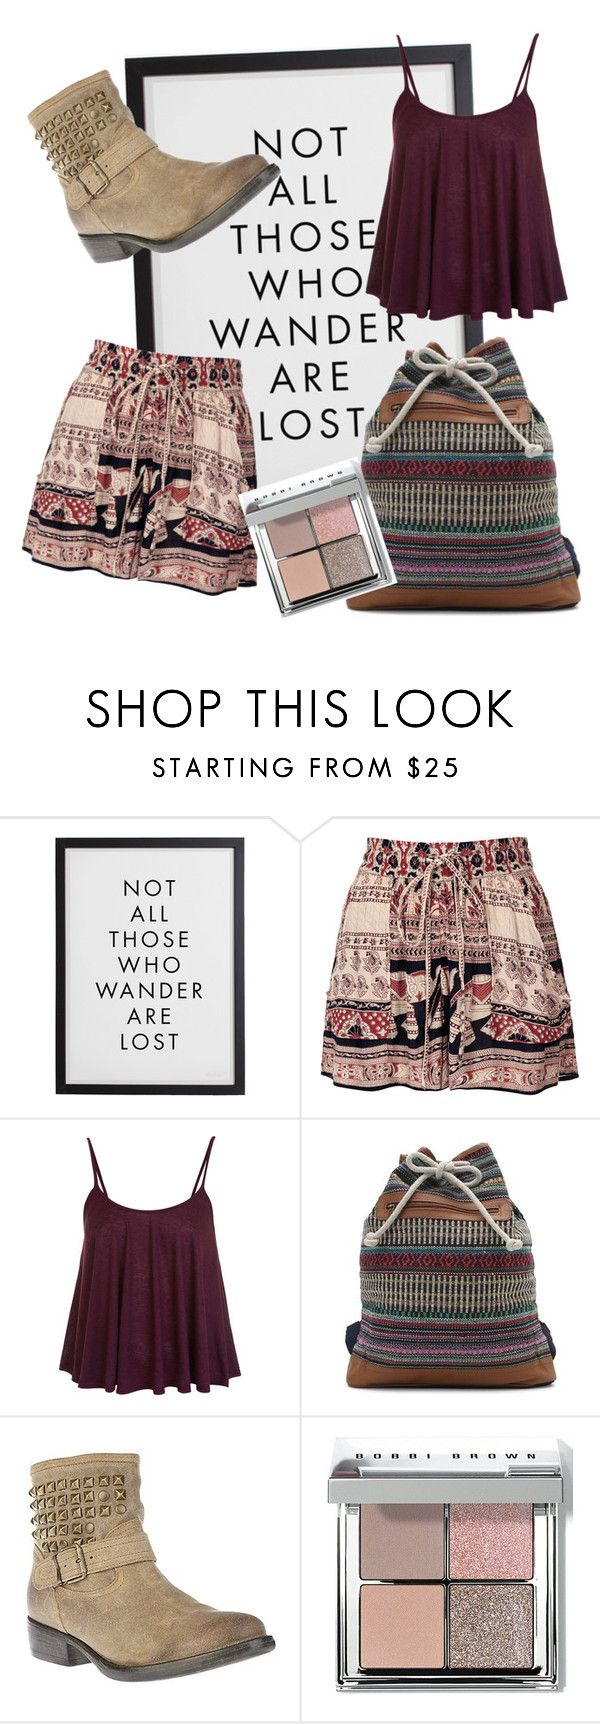 """Some of My Items"" by california-babe on Polyvore featuring Topshop, Miss Selfridge, LA: Hearts, Steve Madden, Bobbi Brown Cosmetics and LOC"